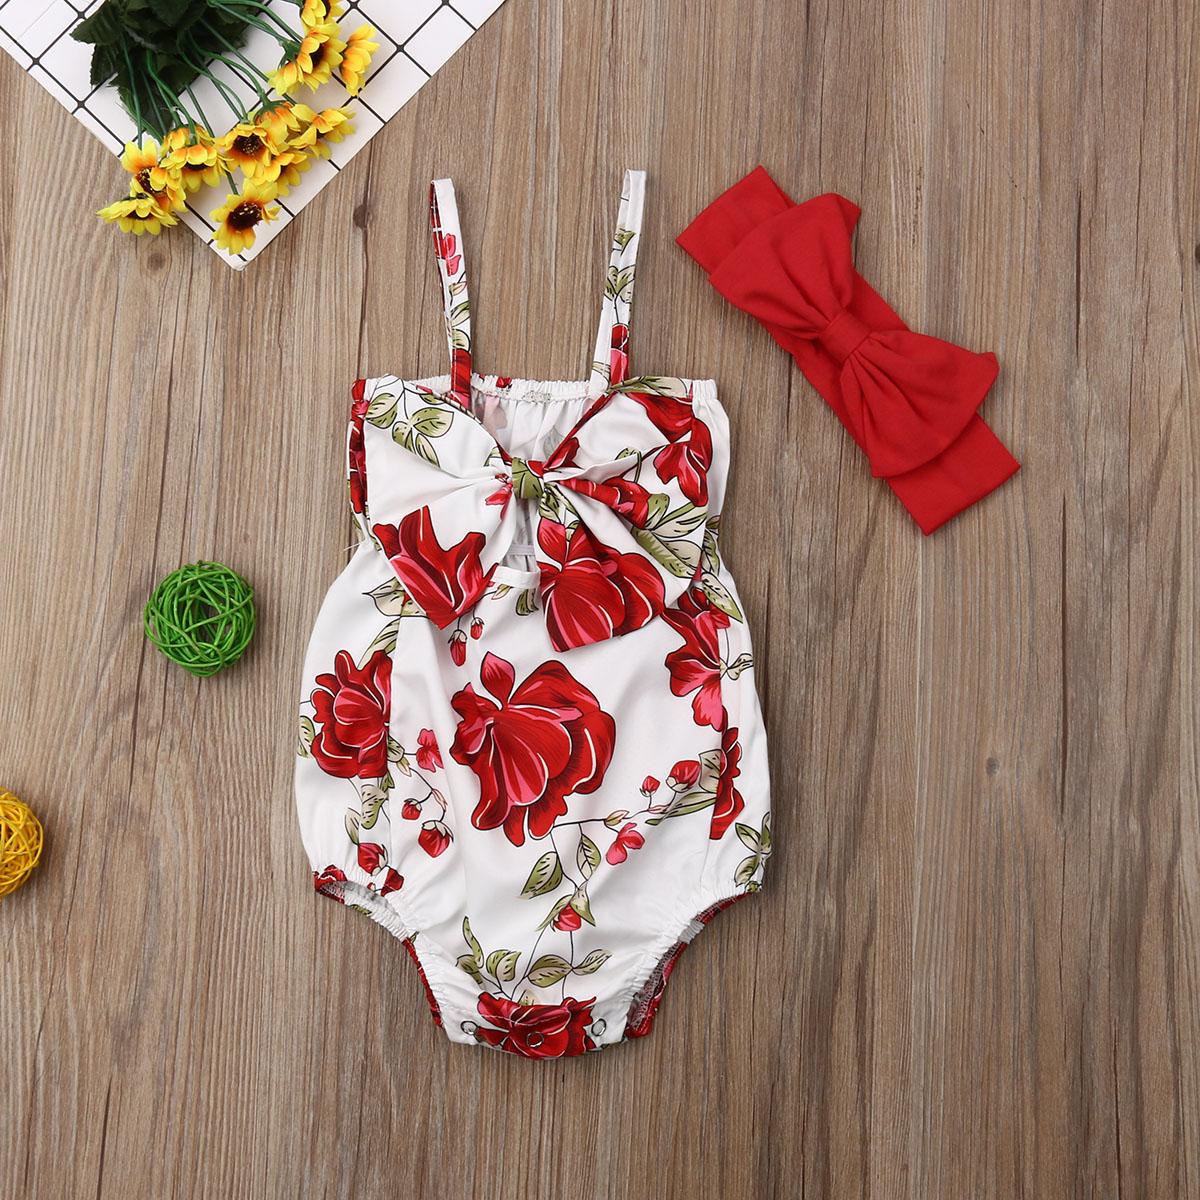 Infant Baby Girl Clothes Sleeveless Flower Print Bowknot Bodysuit Jumpsuit+headband 2pcs Outfits Summer Clothes